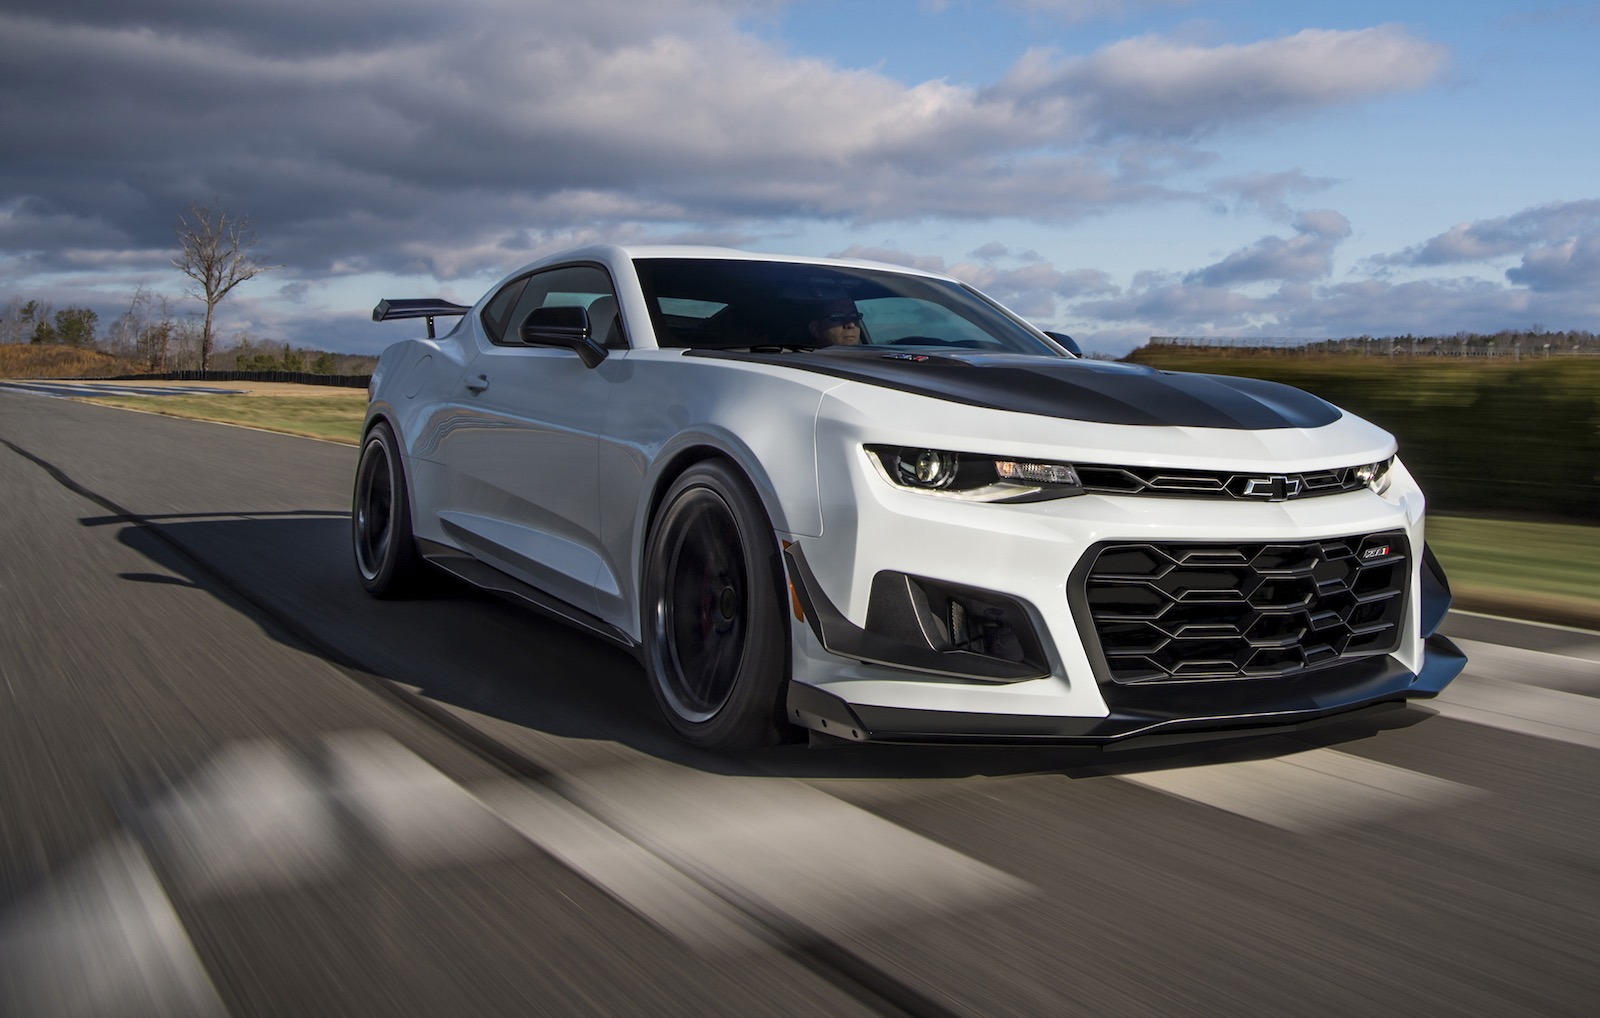 2017 Camaro For Sale >> 2018 Chevrolet Camaro ZL1 1LE announced, most track-capable ever | PerformanceDrive